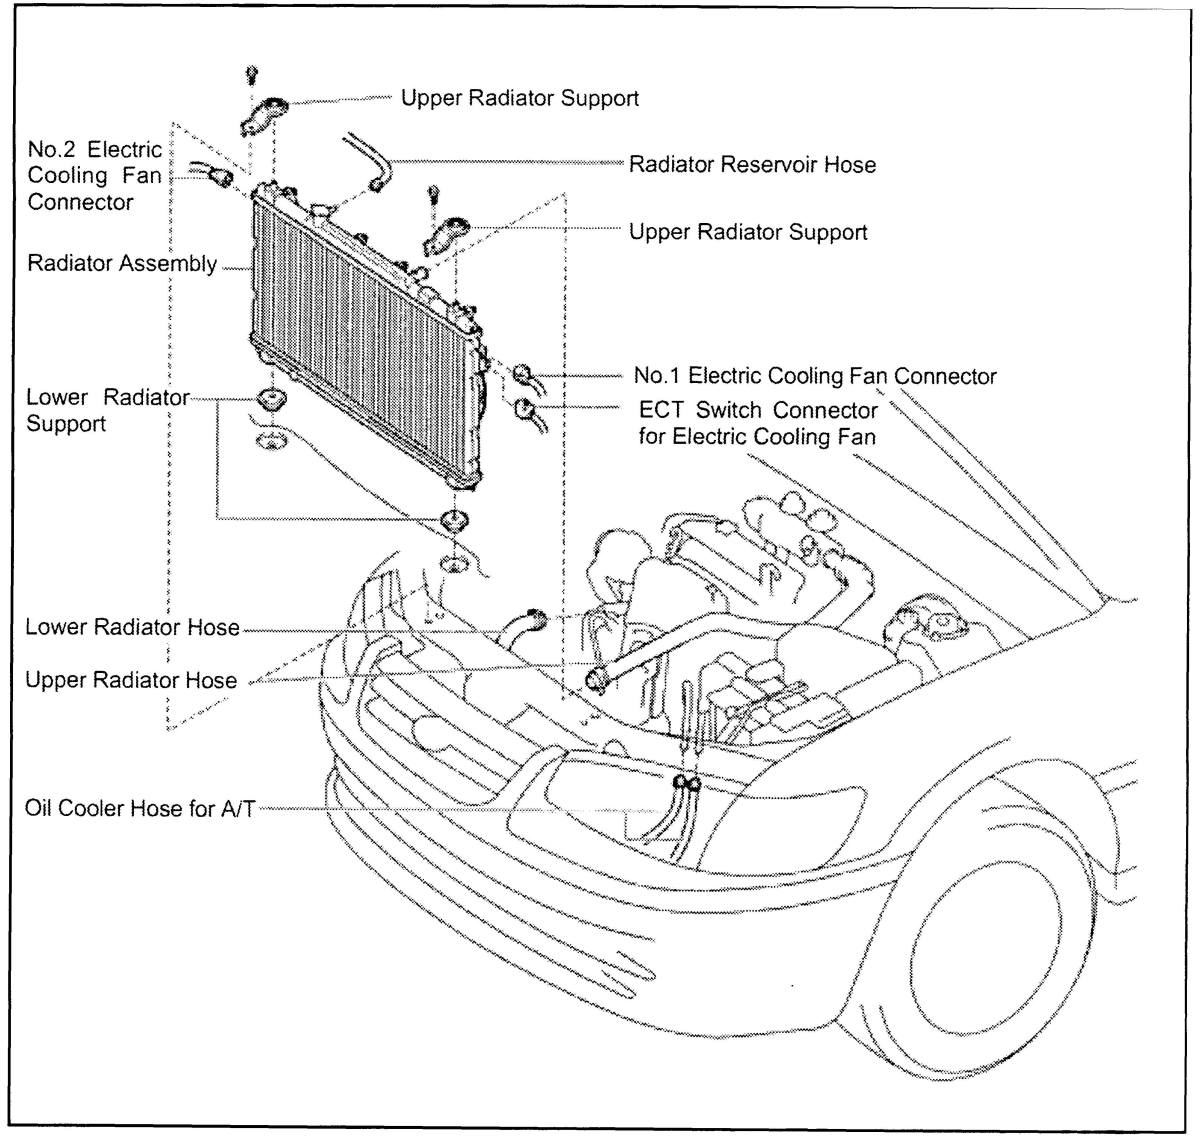 Toyota Camry Radiator Replacement on 1999 Ford Taurus Cooling System Diagram